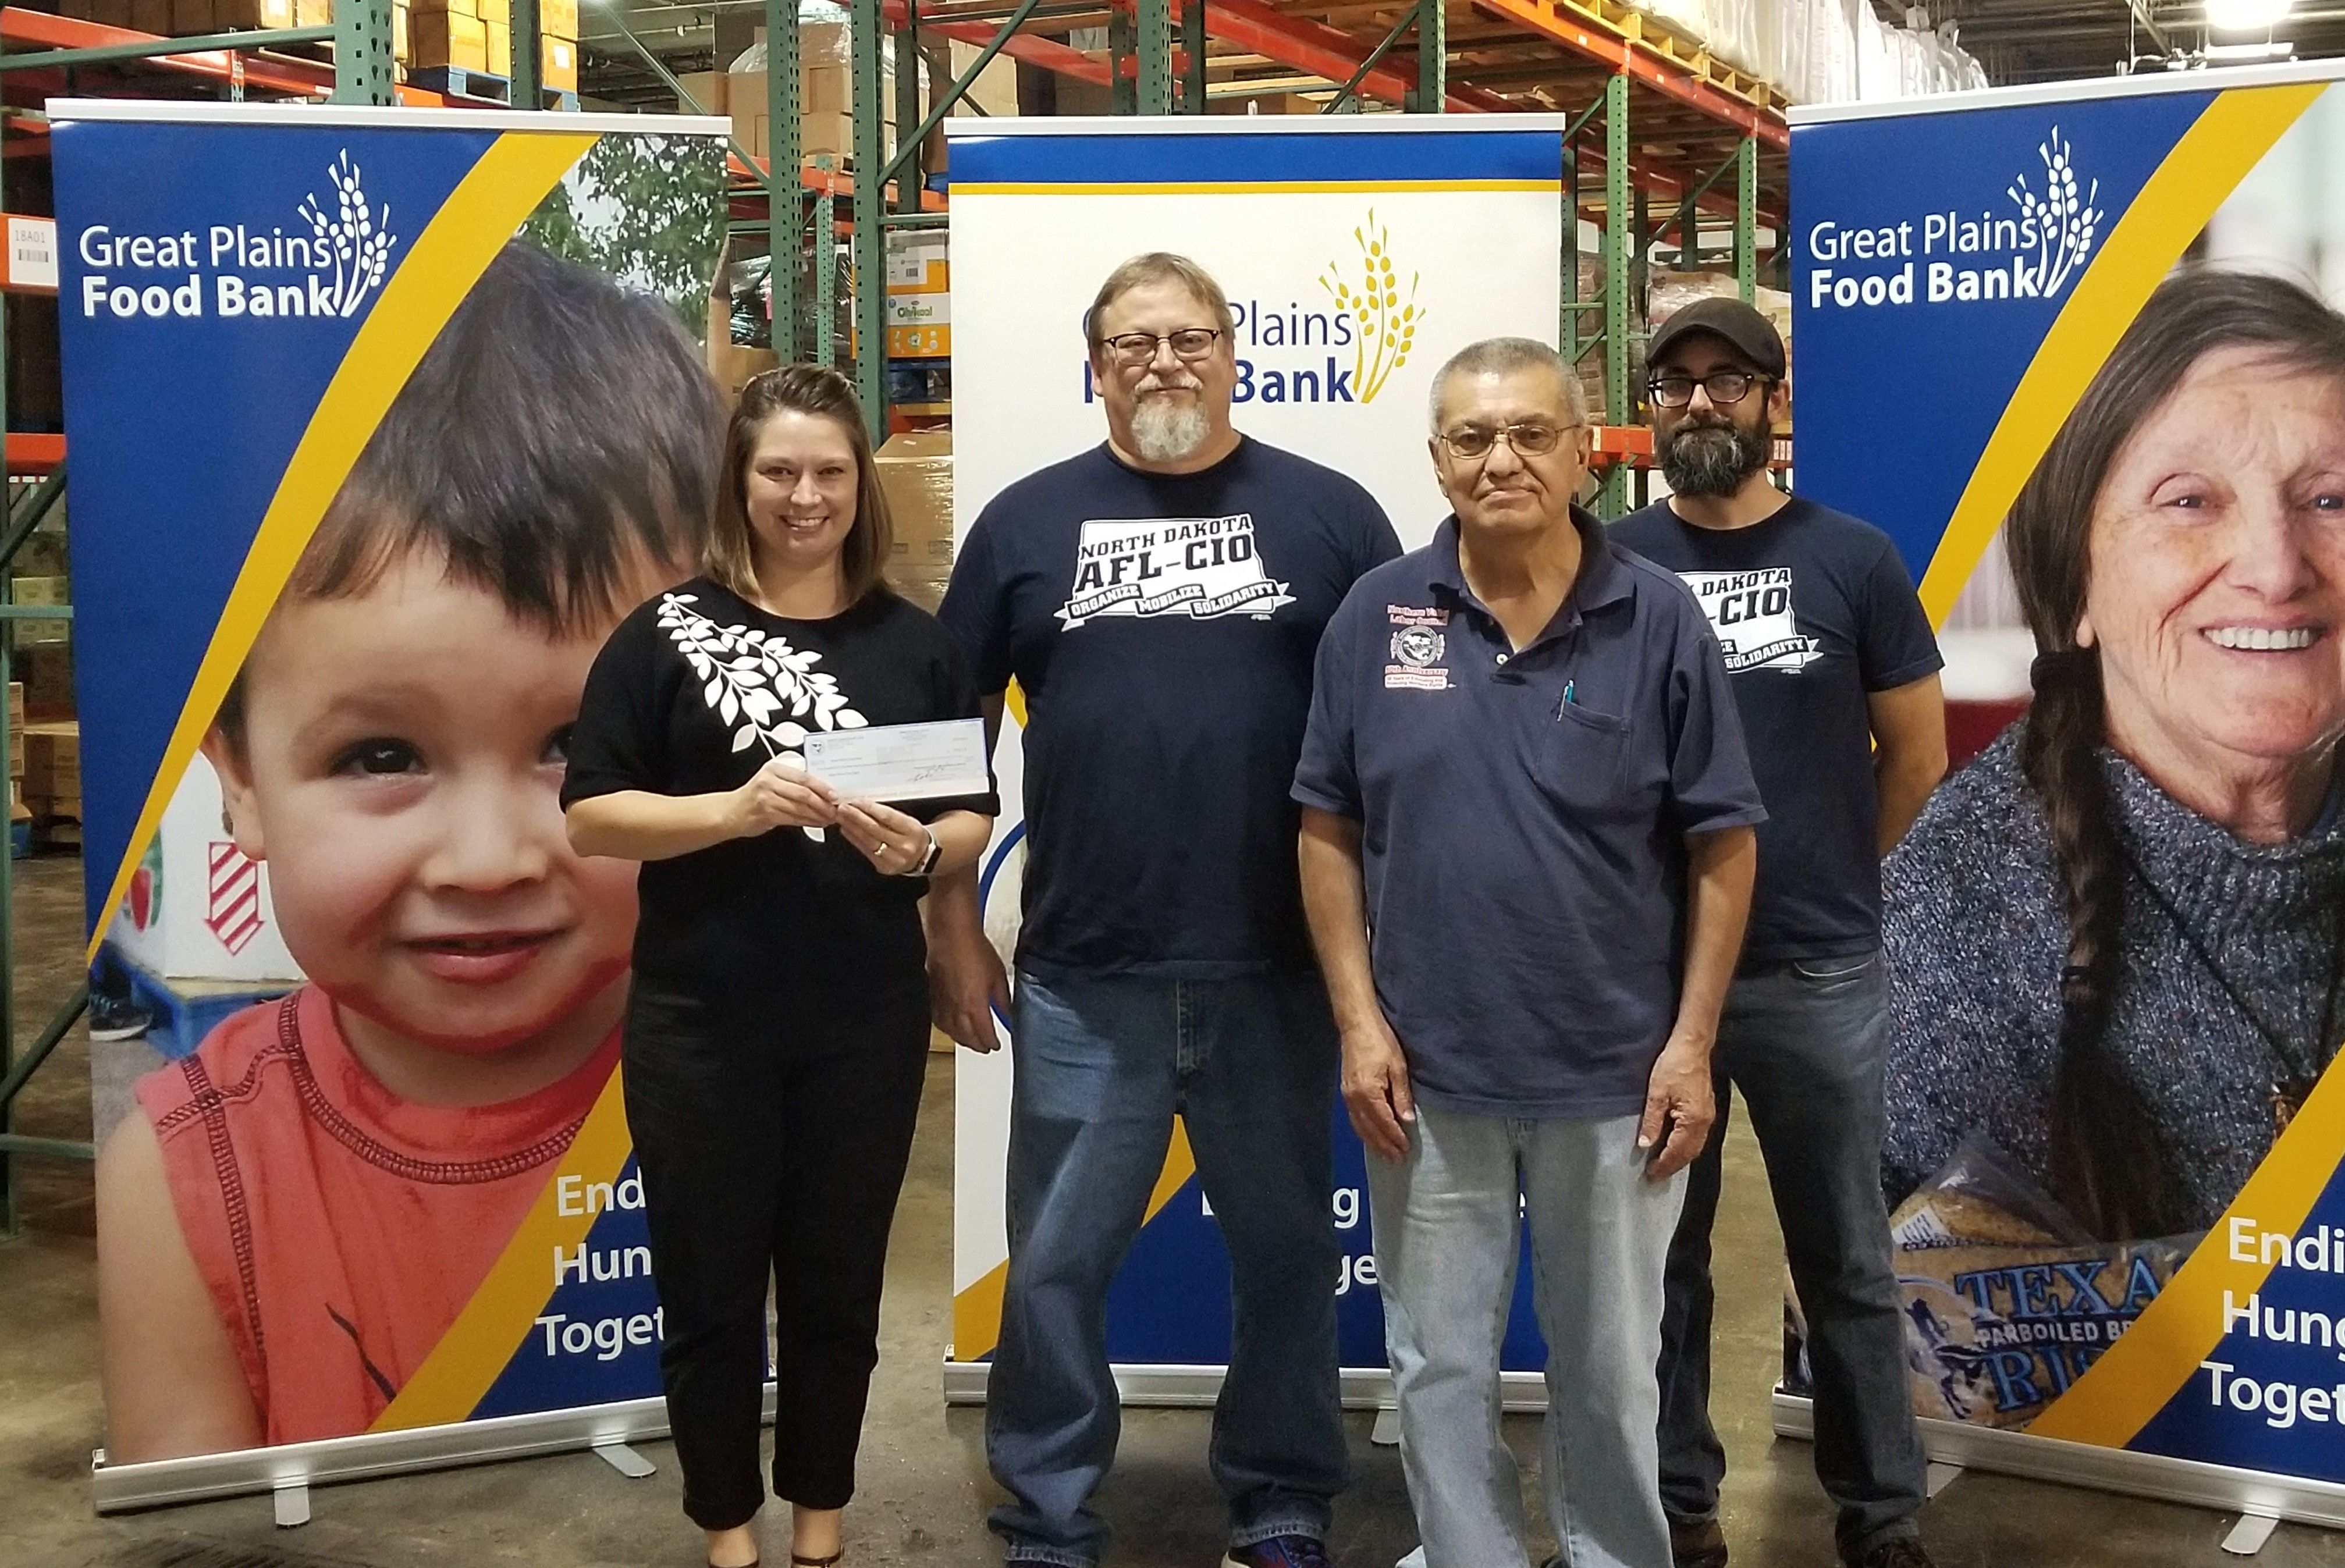 Union leaders deliver donation of more than $5,500 to Great Plains Food Bank